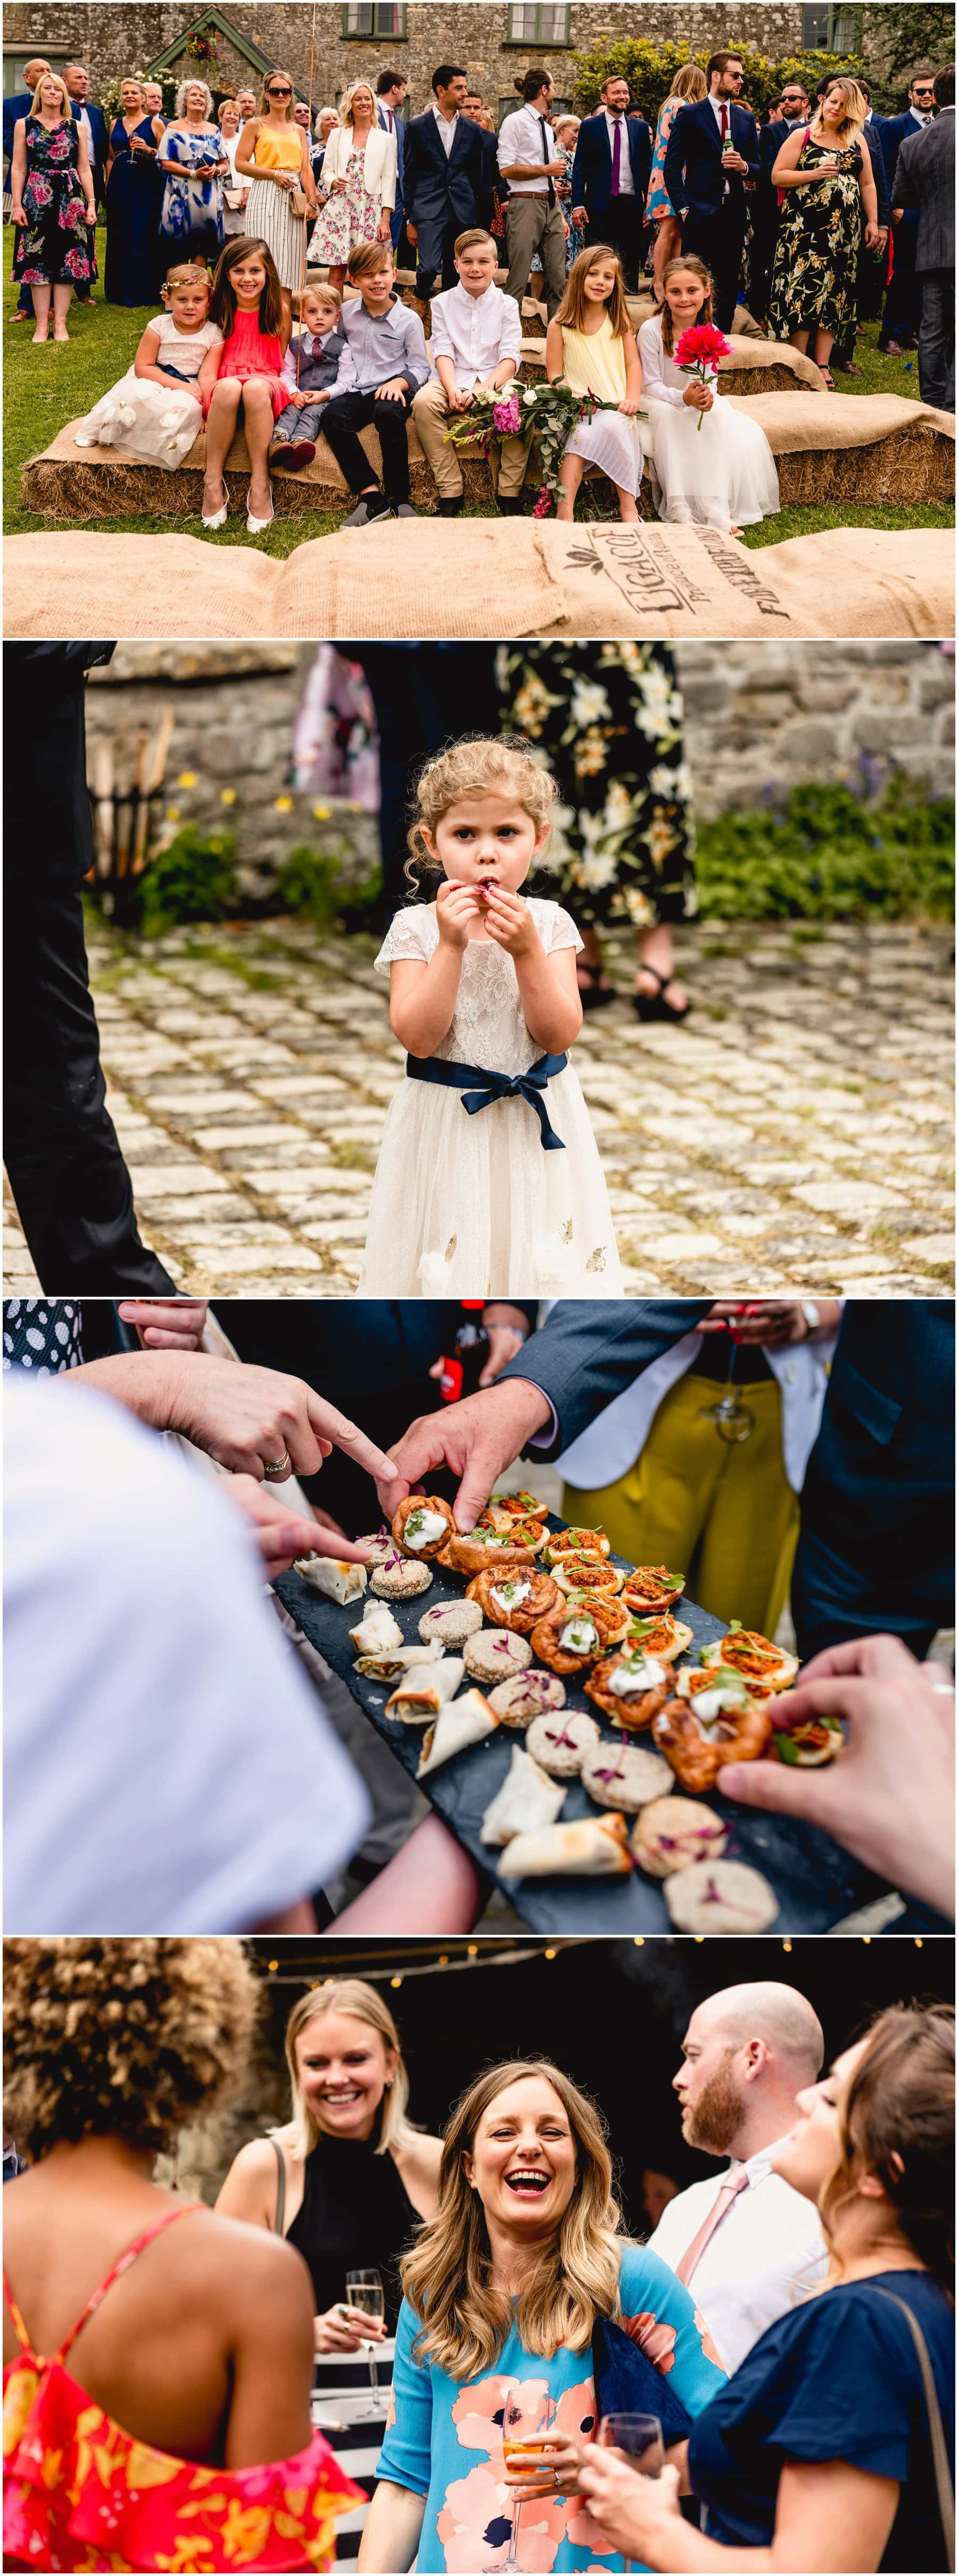 Candid and documentary photography during wedding reception.